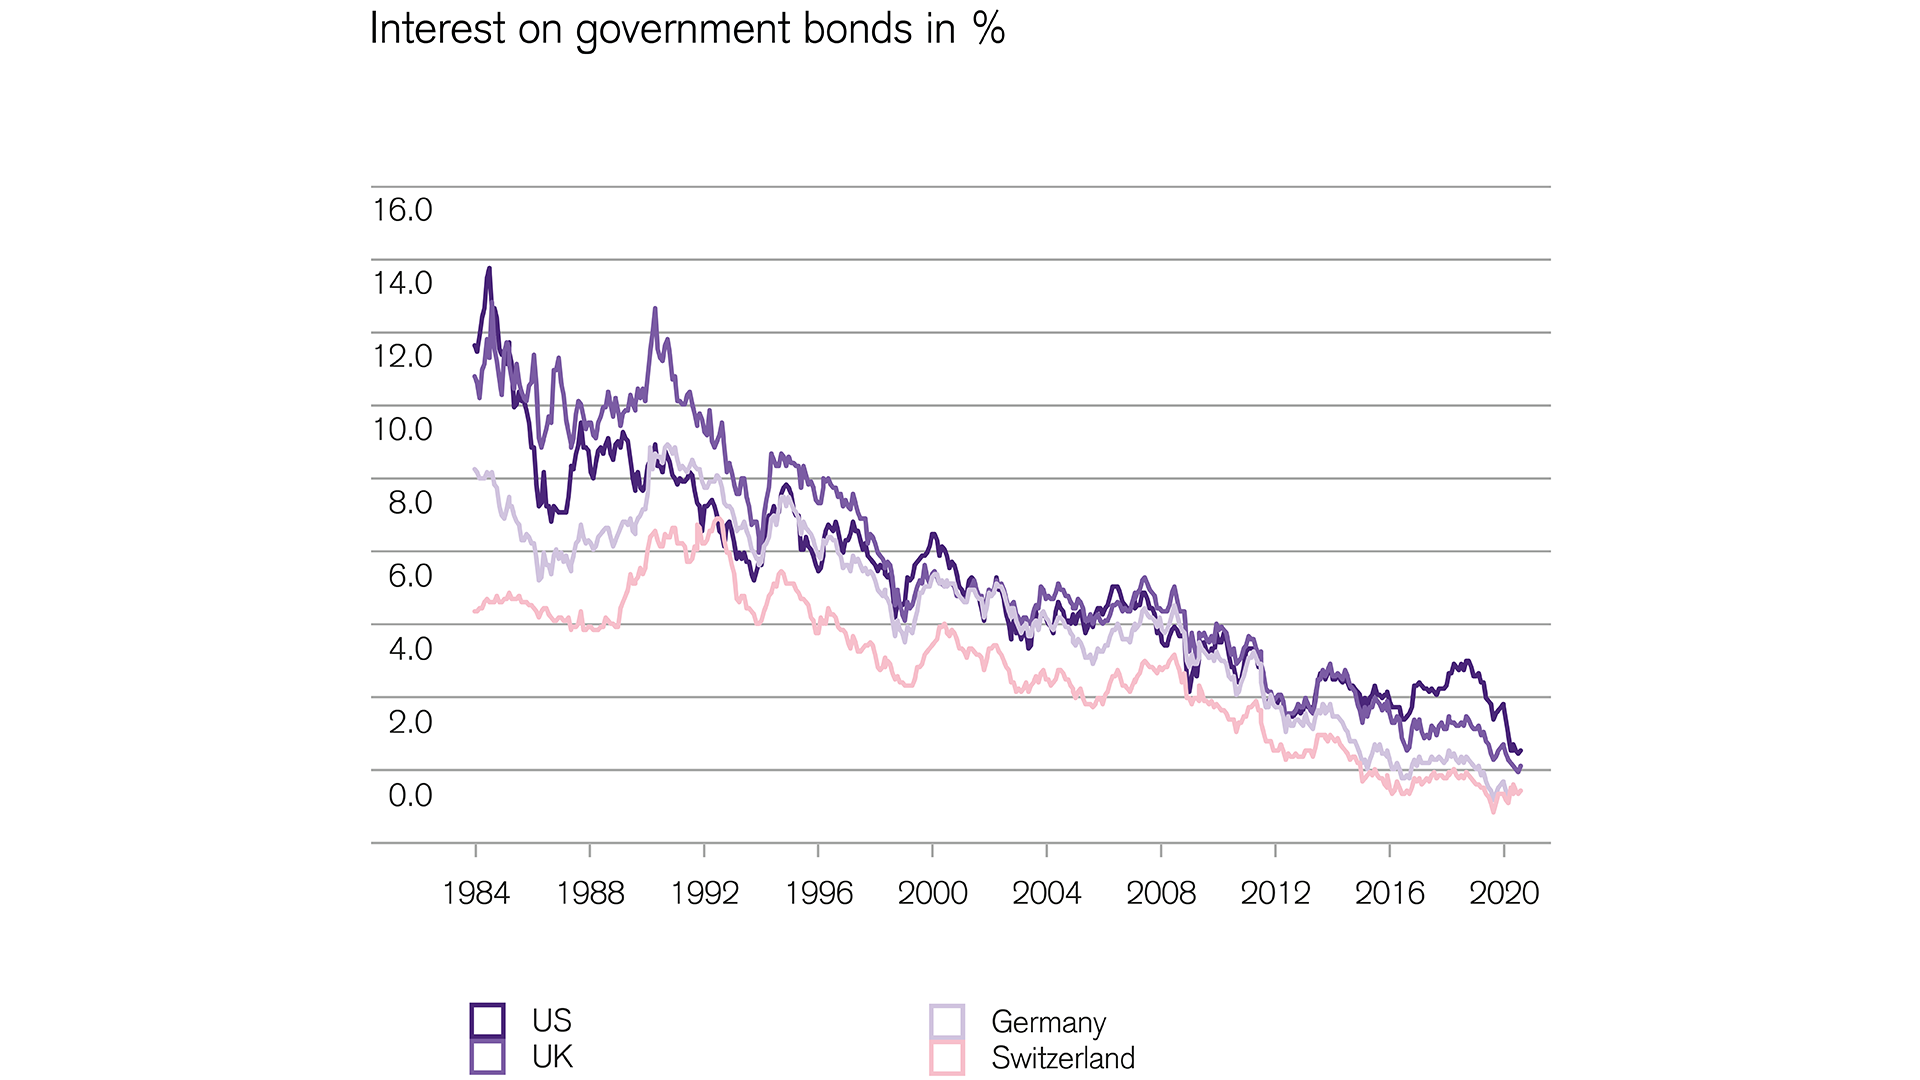 Financial markets: Interest rates on government bonds near rock bottom